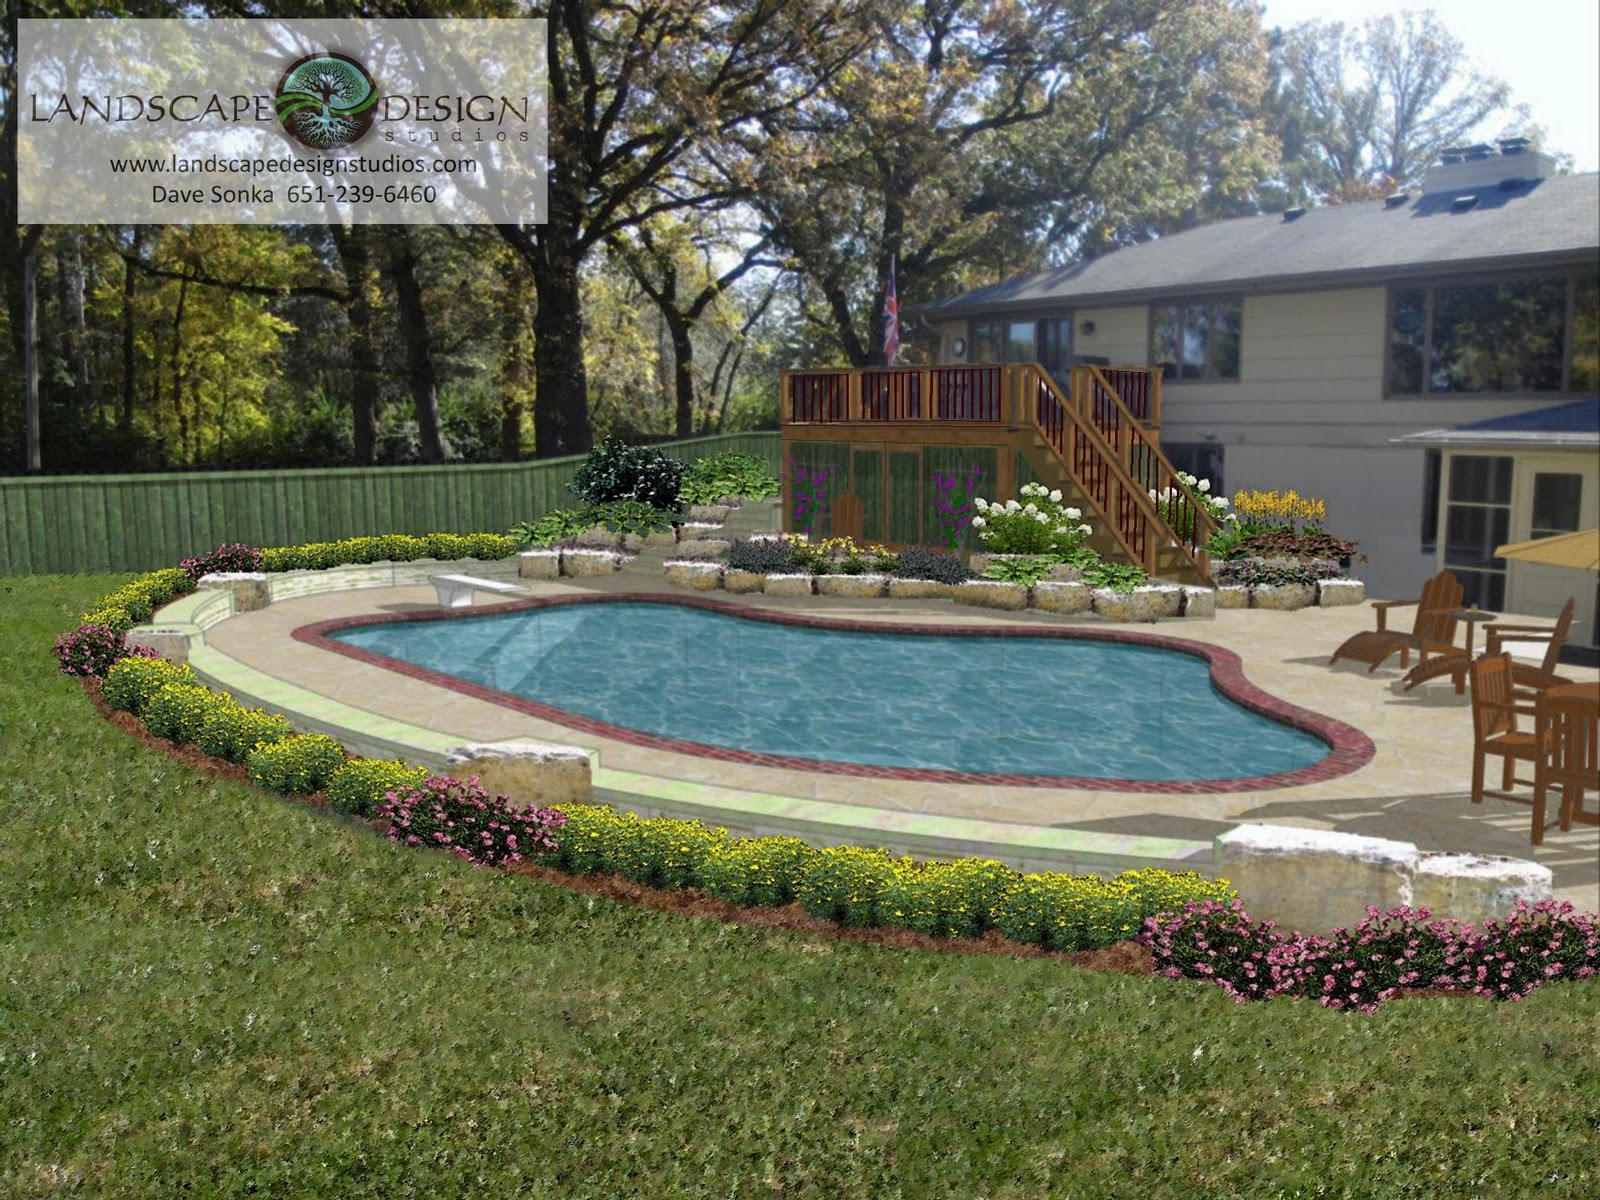 Landscaping area landscaping ideas around spa pools for Landscaping ideas for pool areas